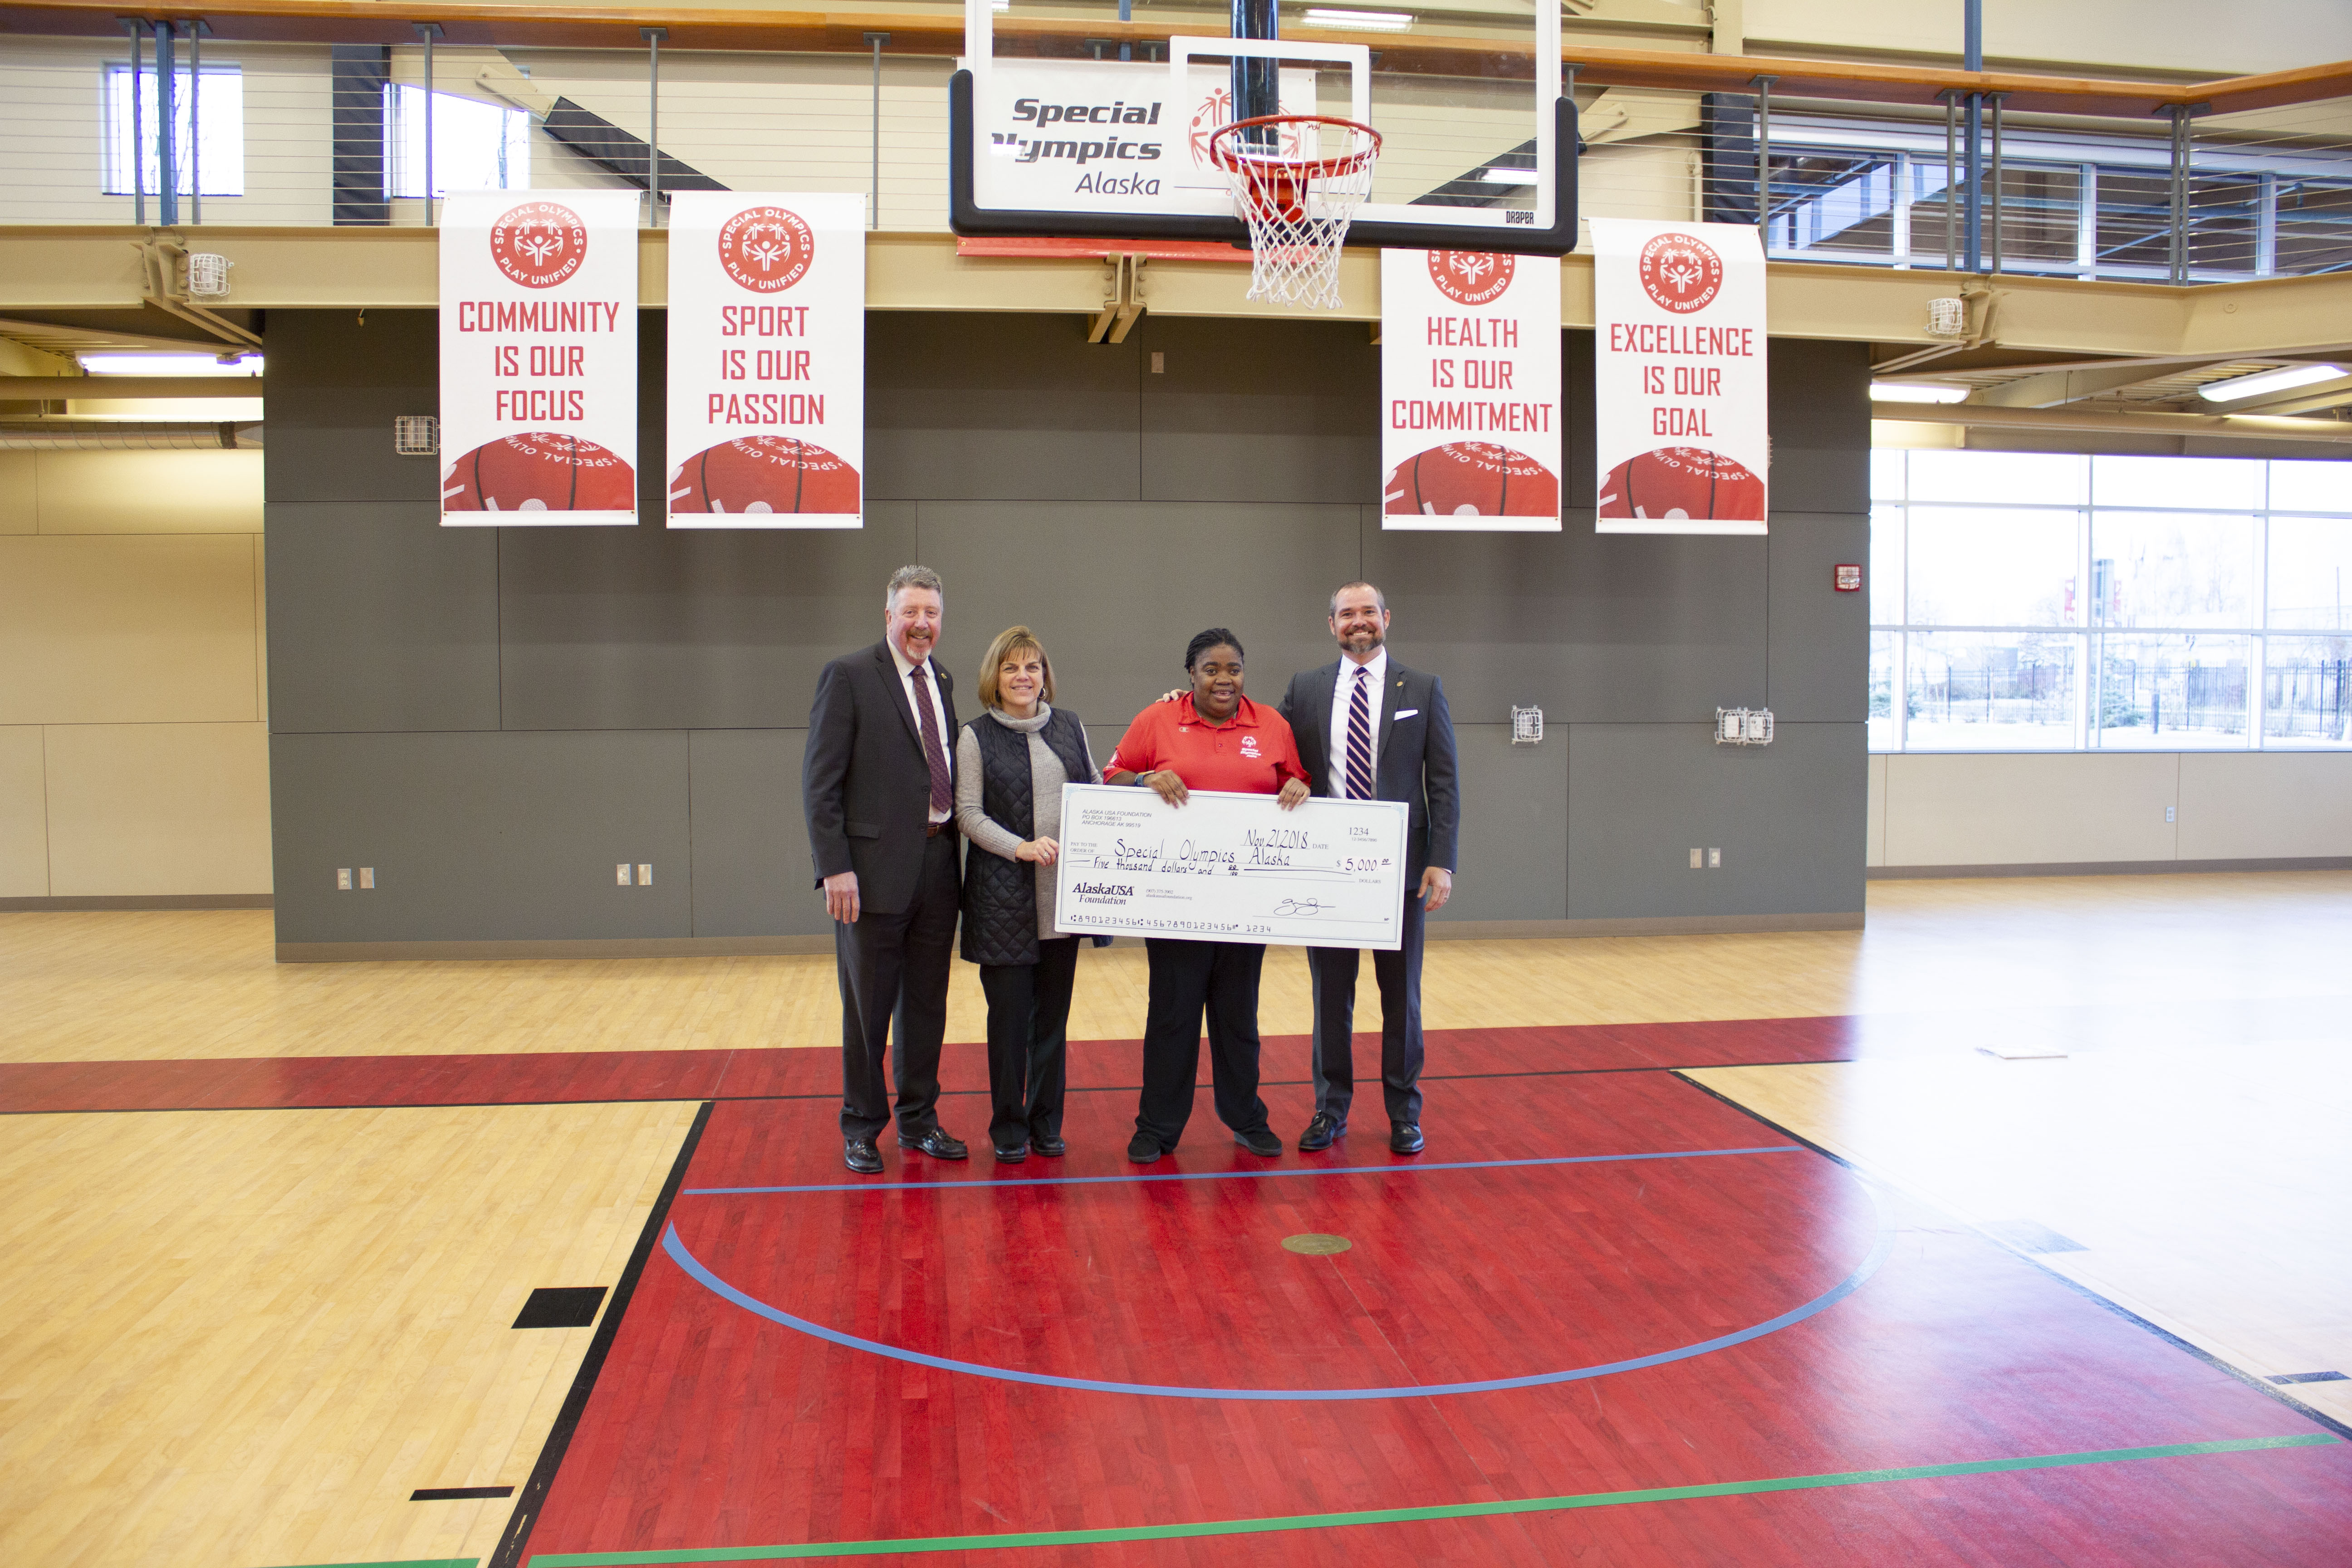 $5,000 to Special Olympics Alaska to help athletes find joy, confidence, and fulfillment through year-round sports training and athletic competition in a variety of Olympic-type sports.